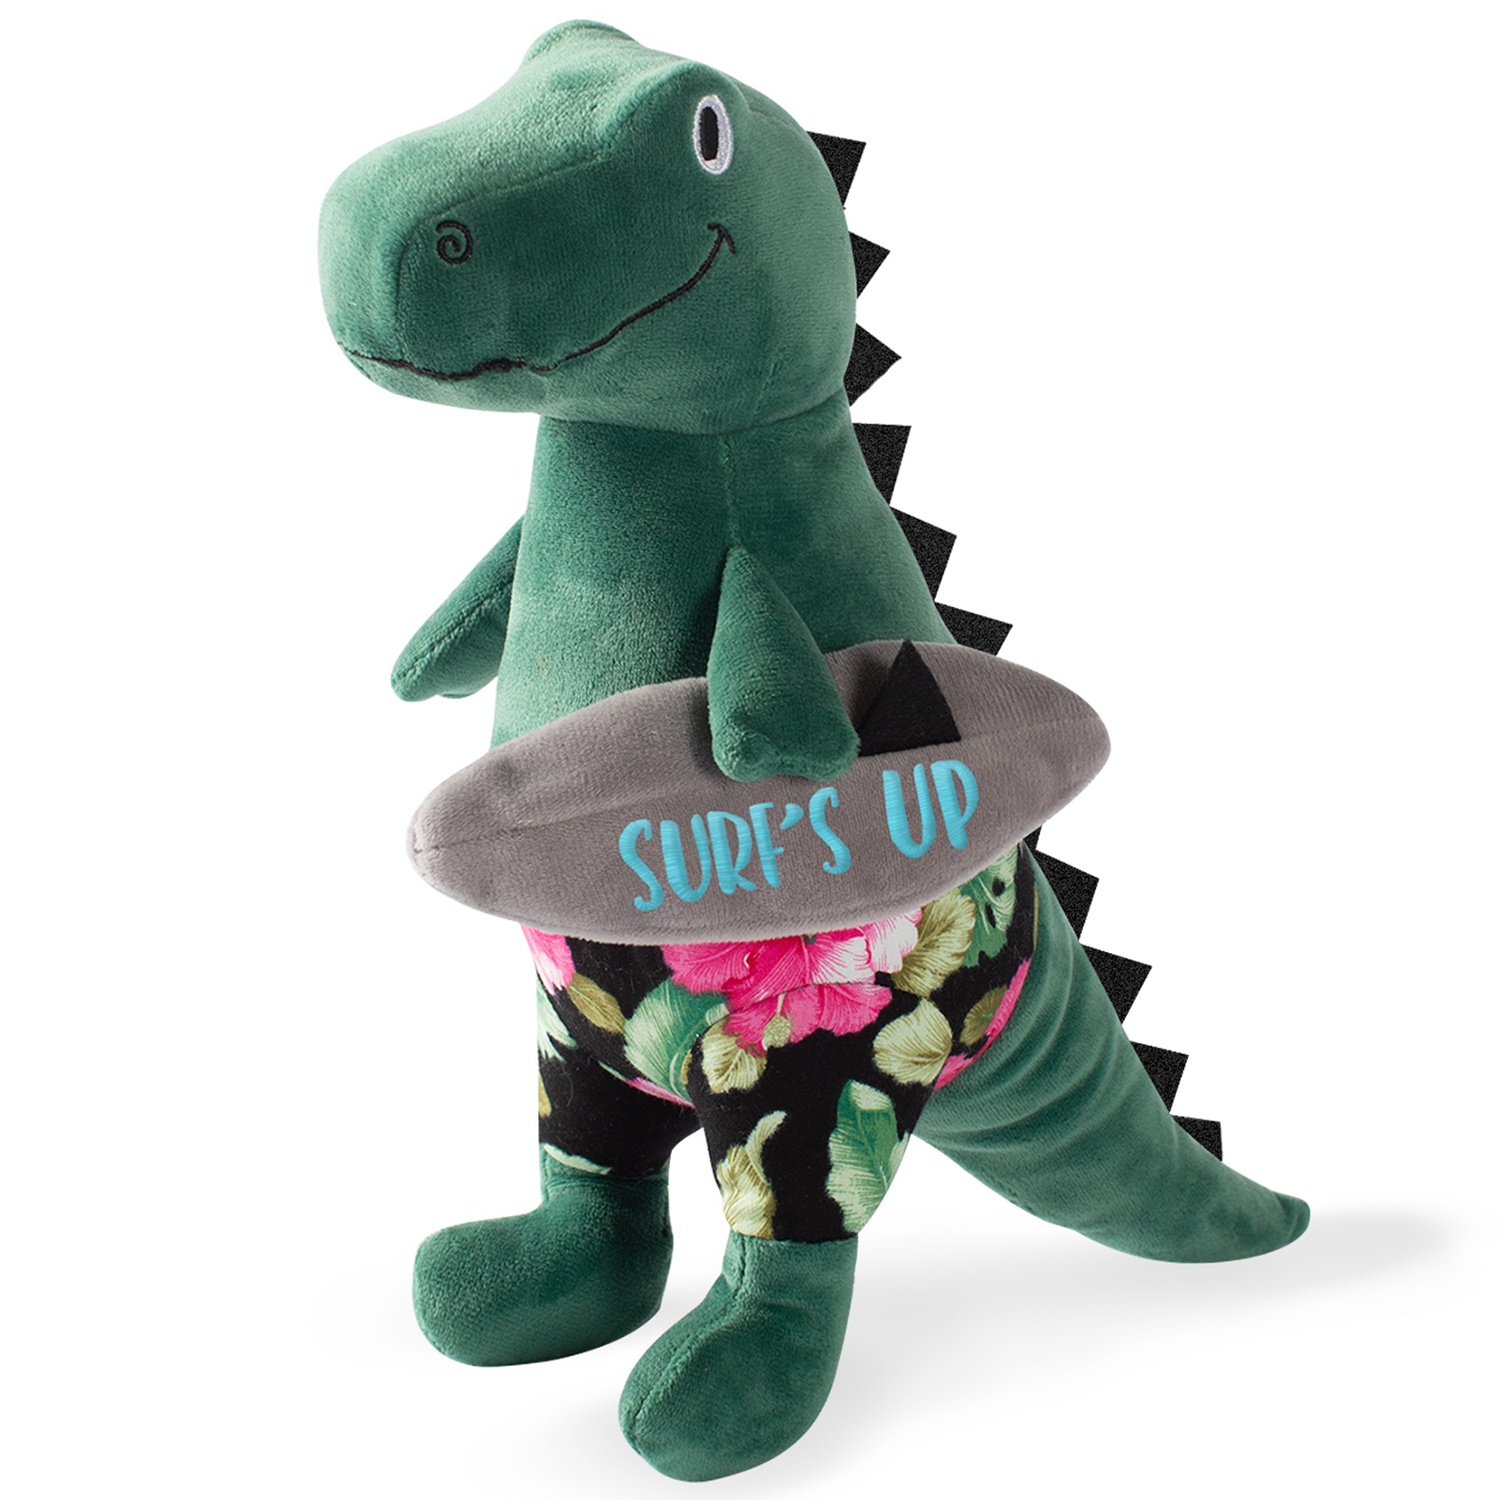 Surfer Bro Rex Dog Toy